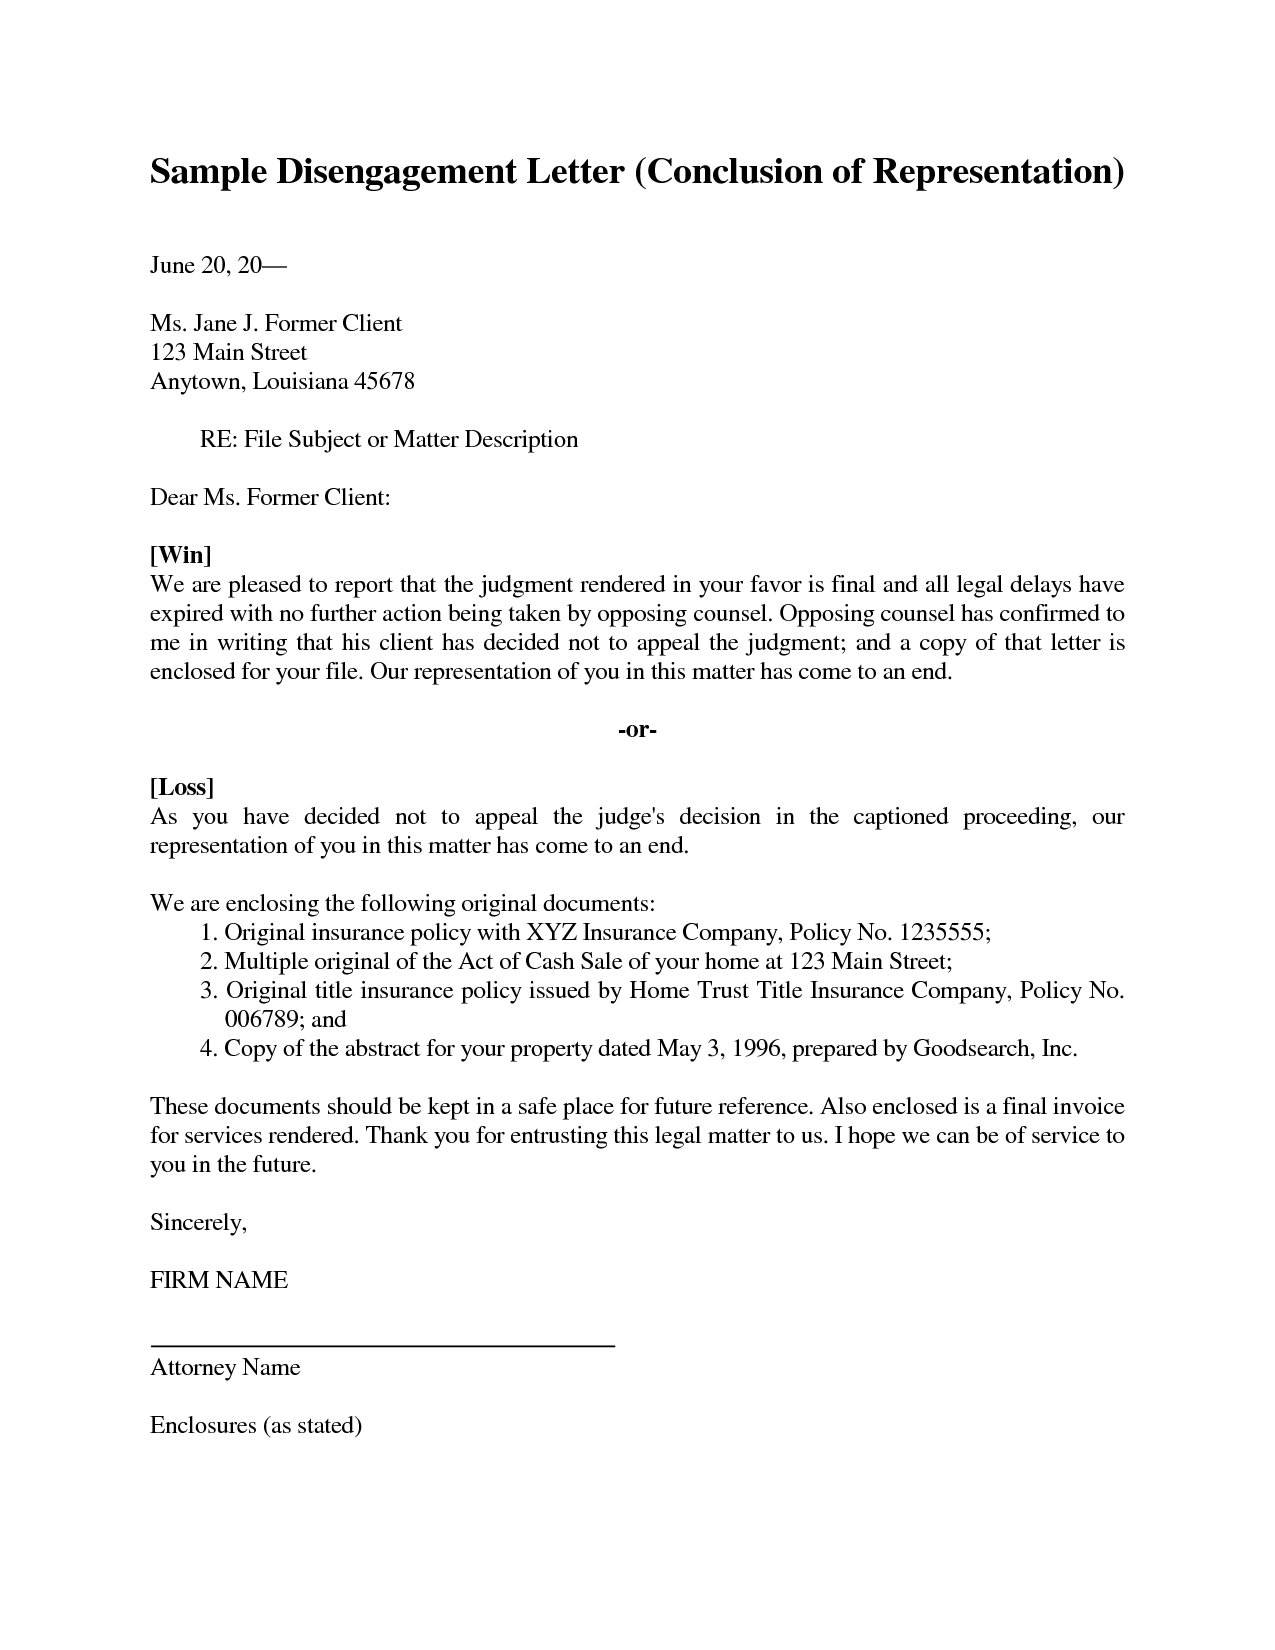 Sample Legal Representation Letter By Mlp  Sample Legal